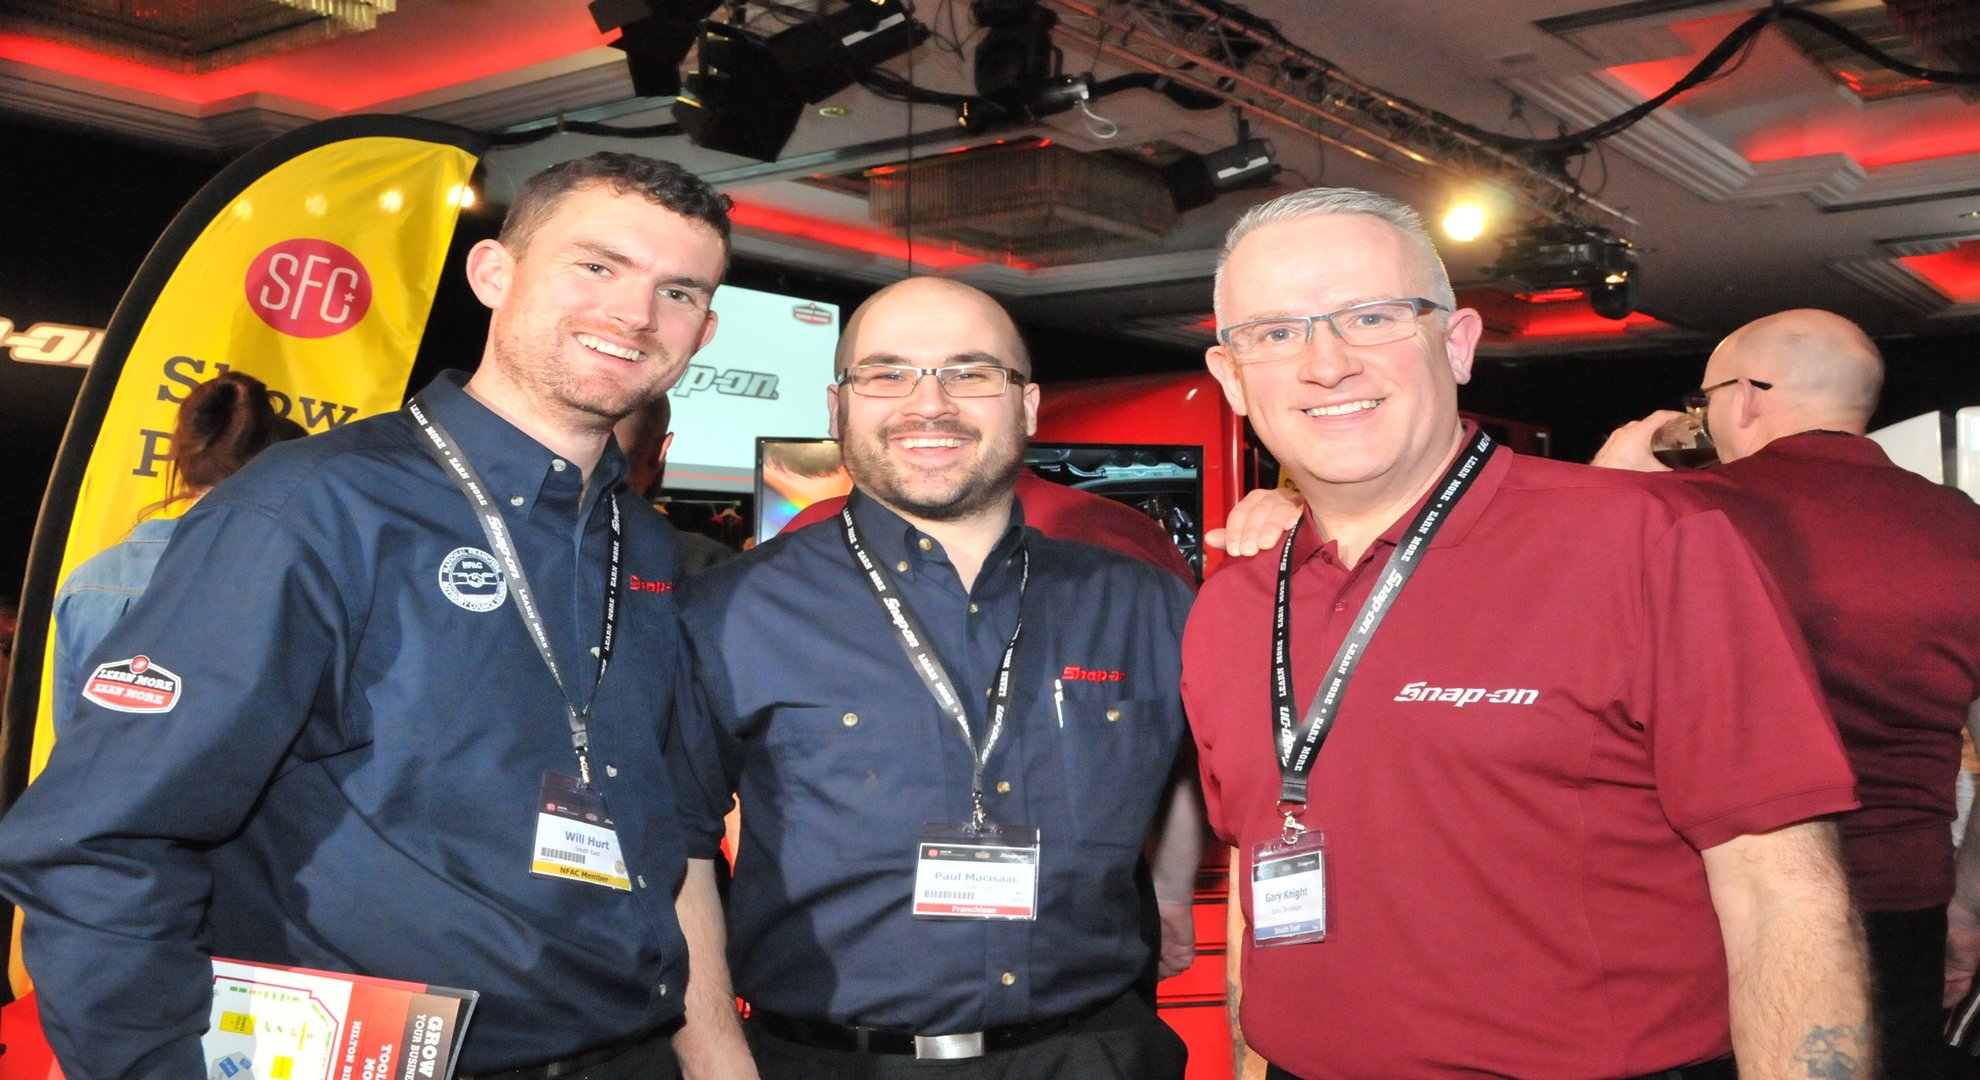 Snap-on franchisees